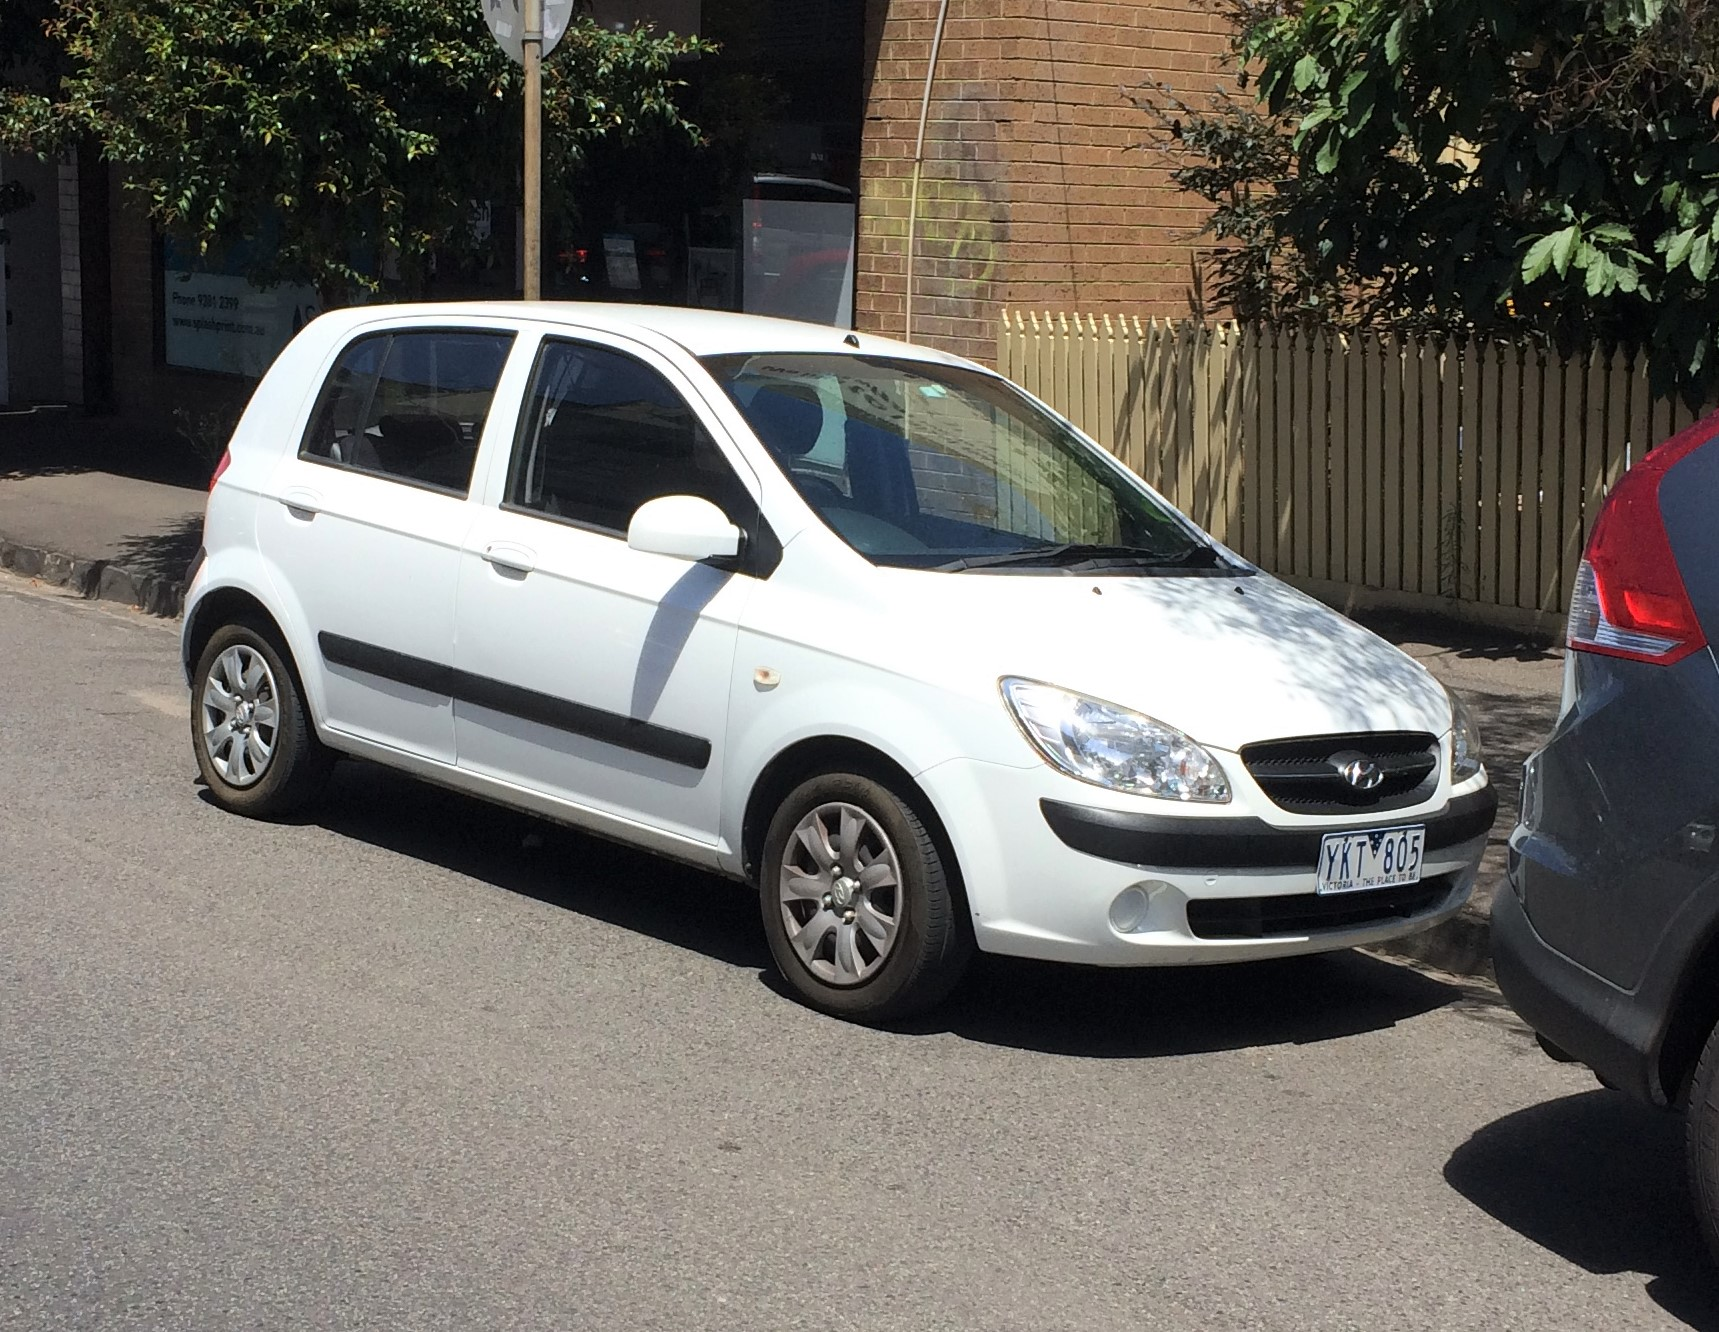 Picture of Renee's 2011 Hyundai Getz